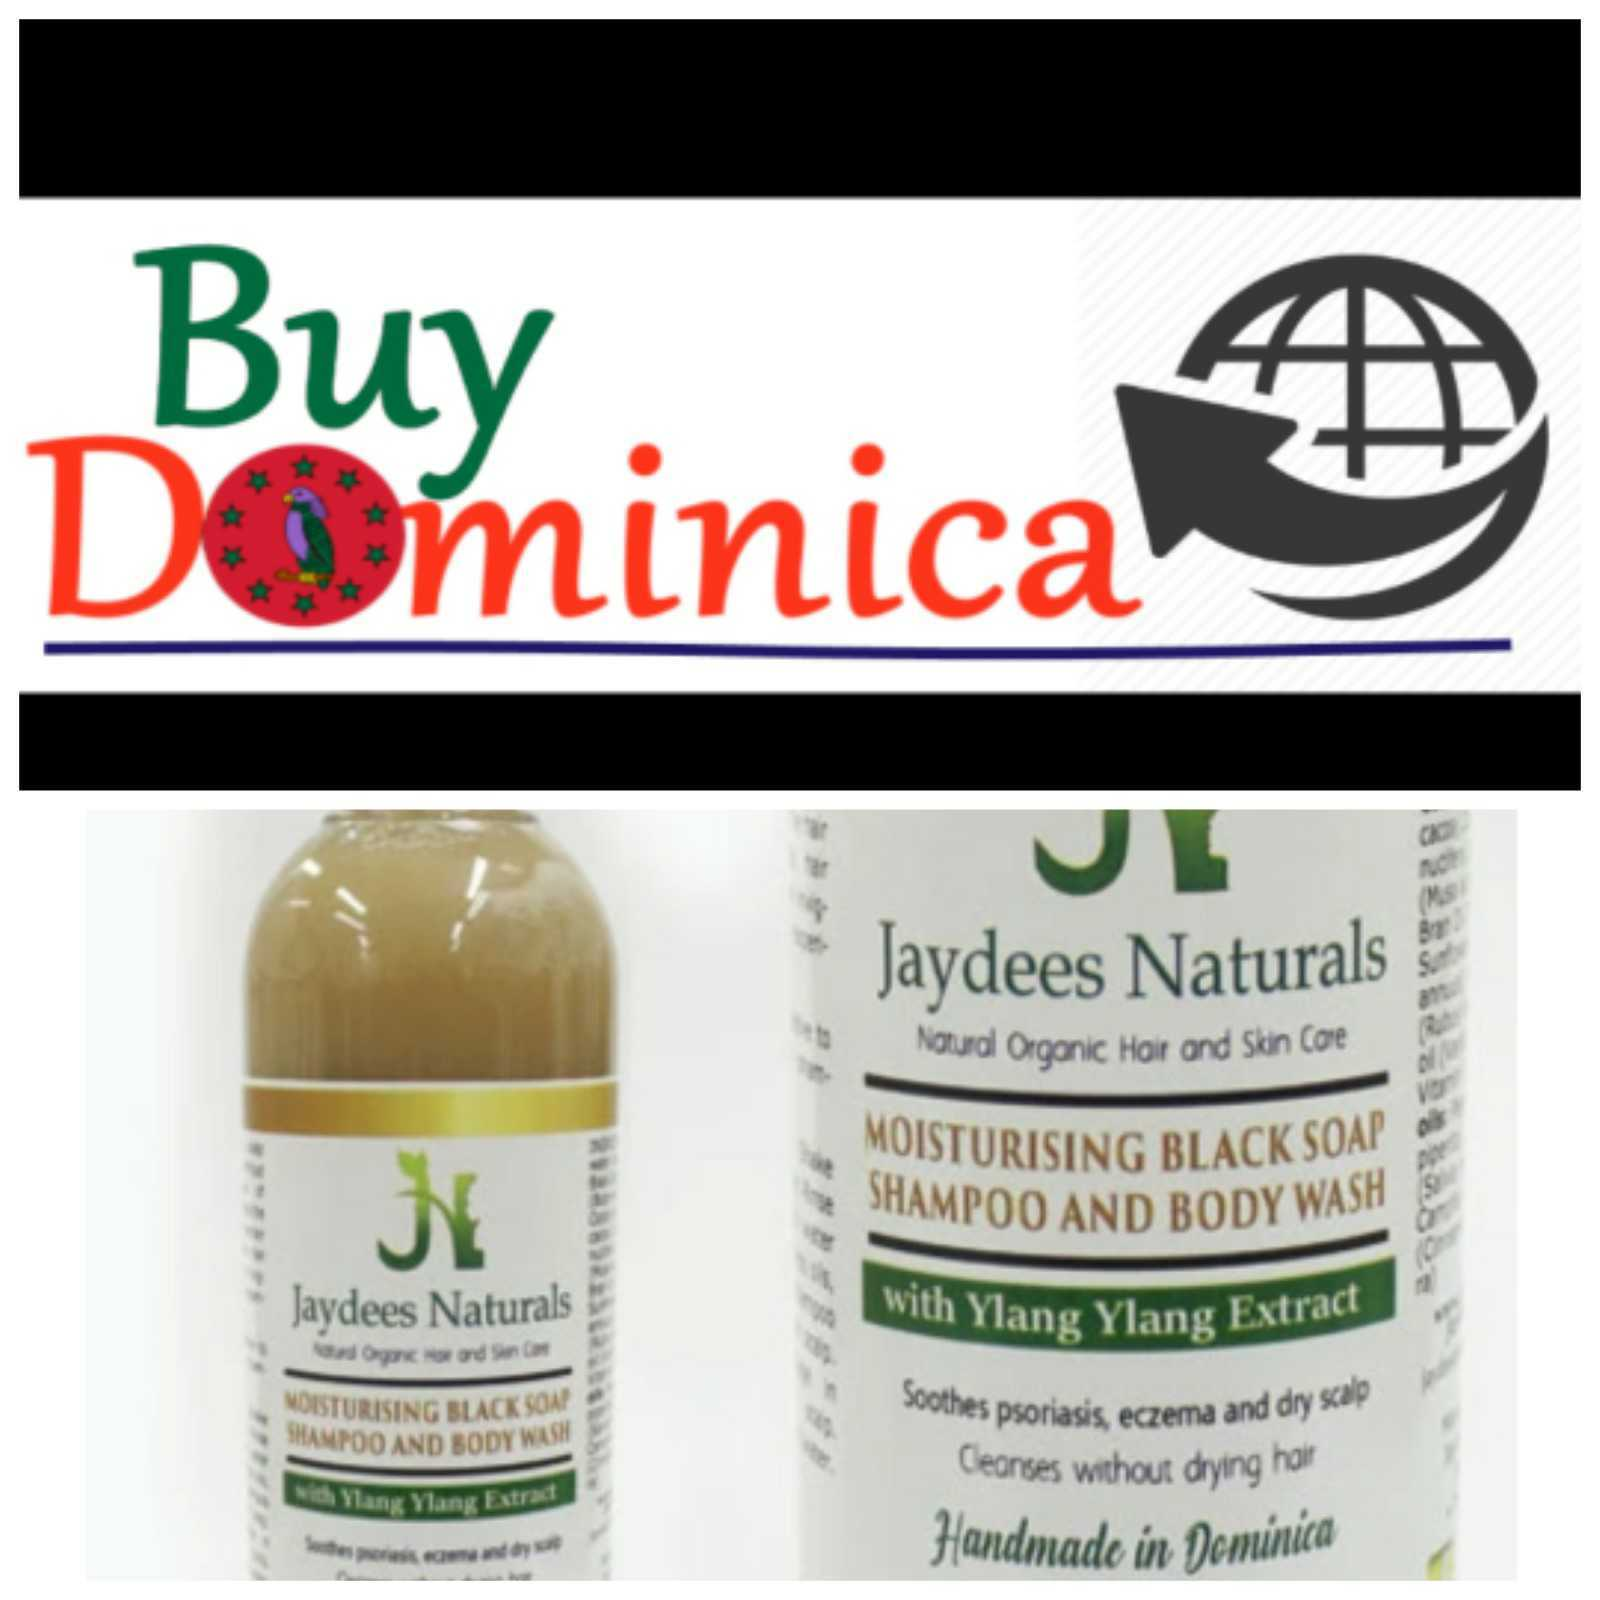 New North America WebsiteLaunchedExclusively for Dominica Products